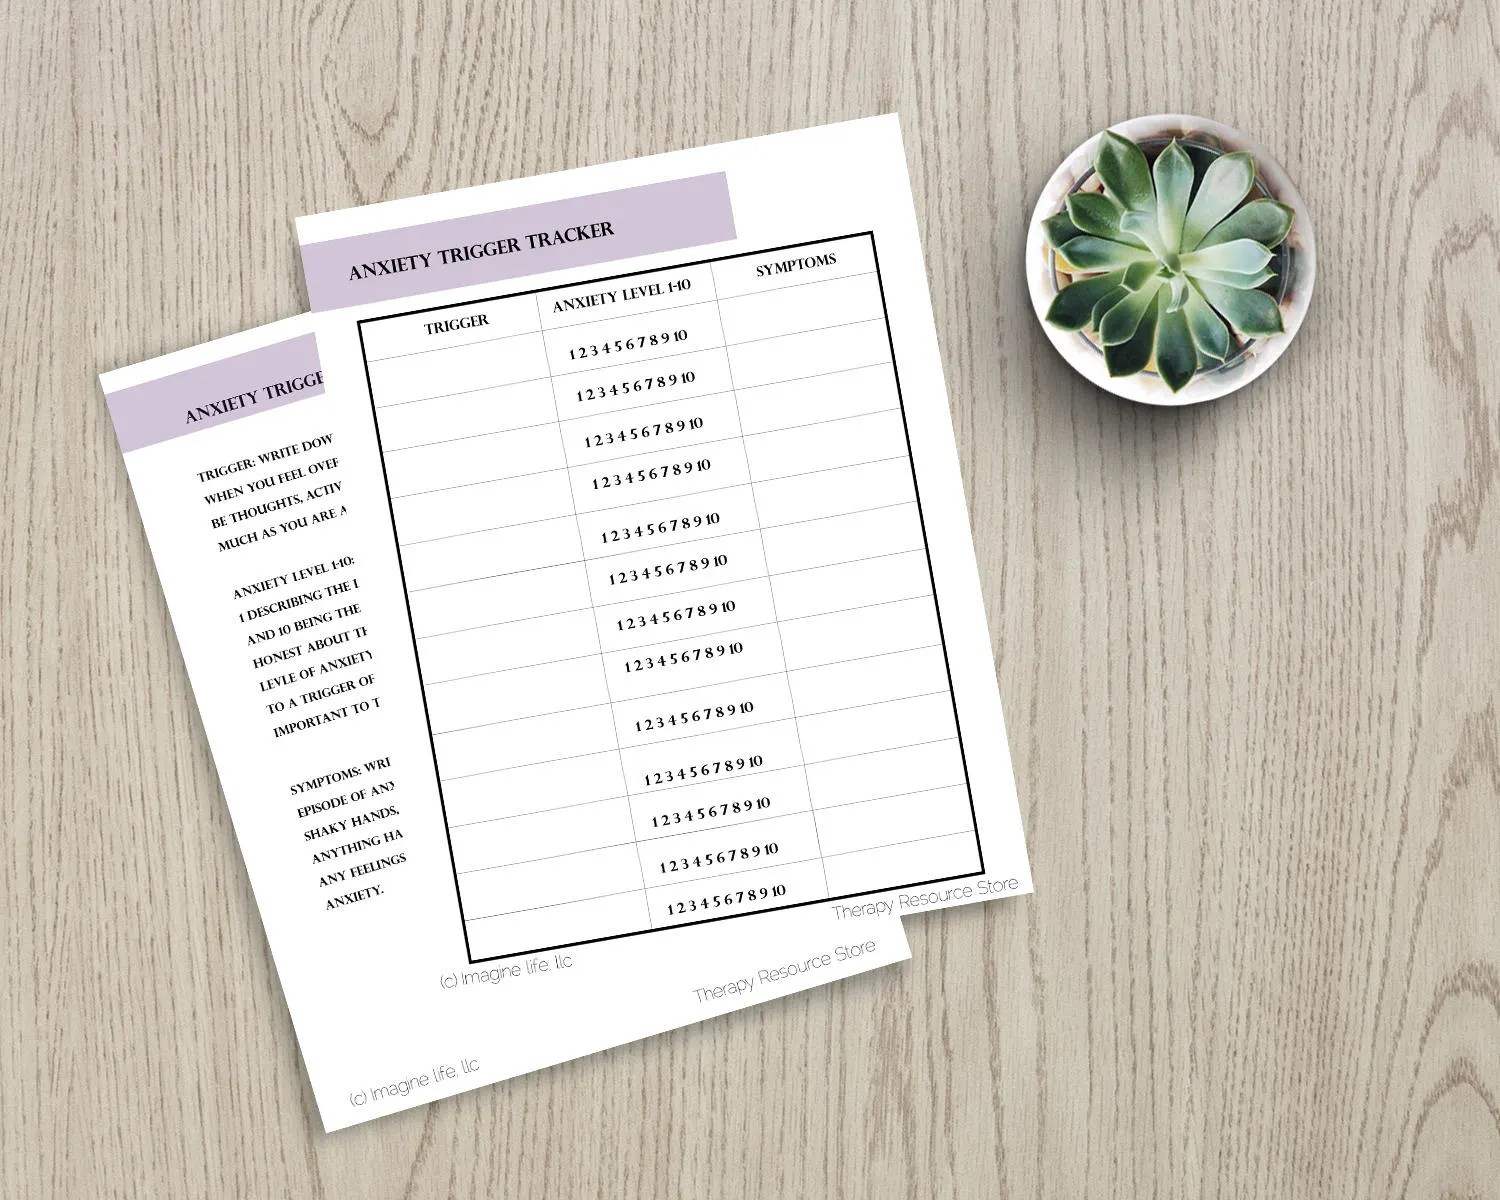 Therapy Worksheet Anxiety Trigger Tracker With